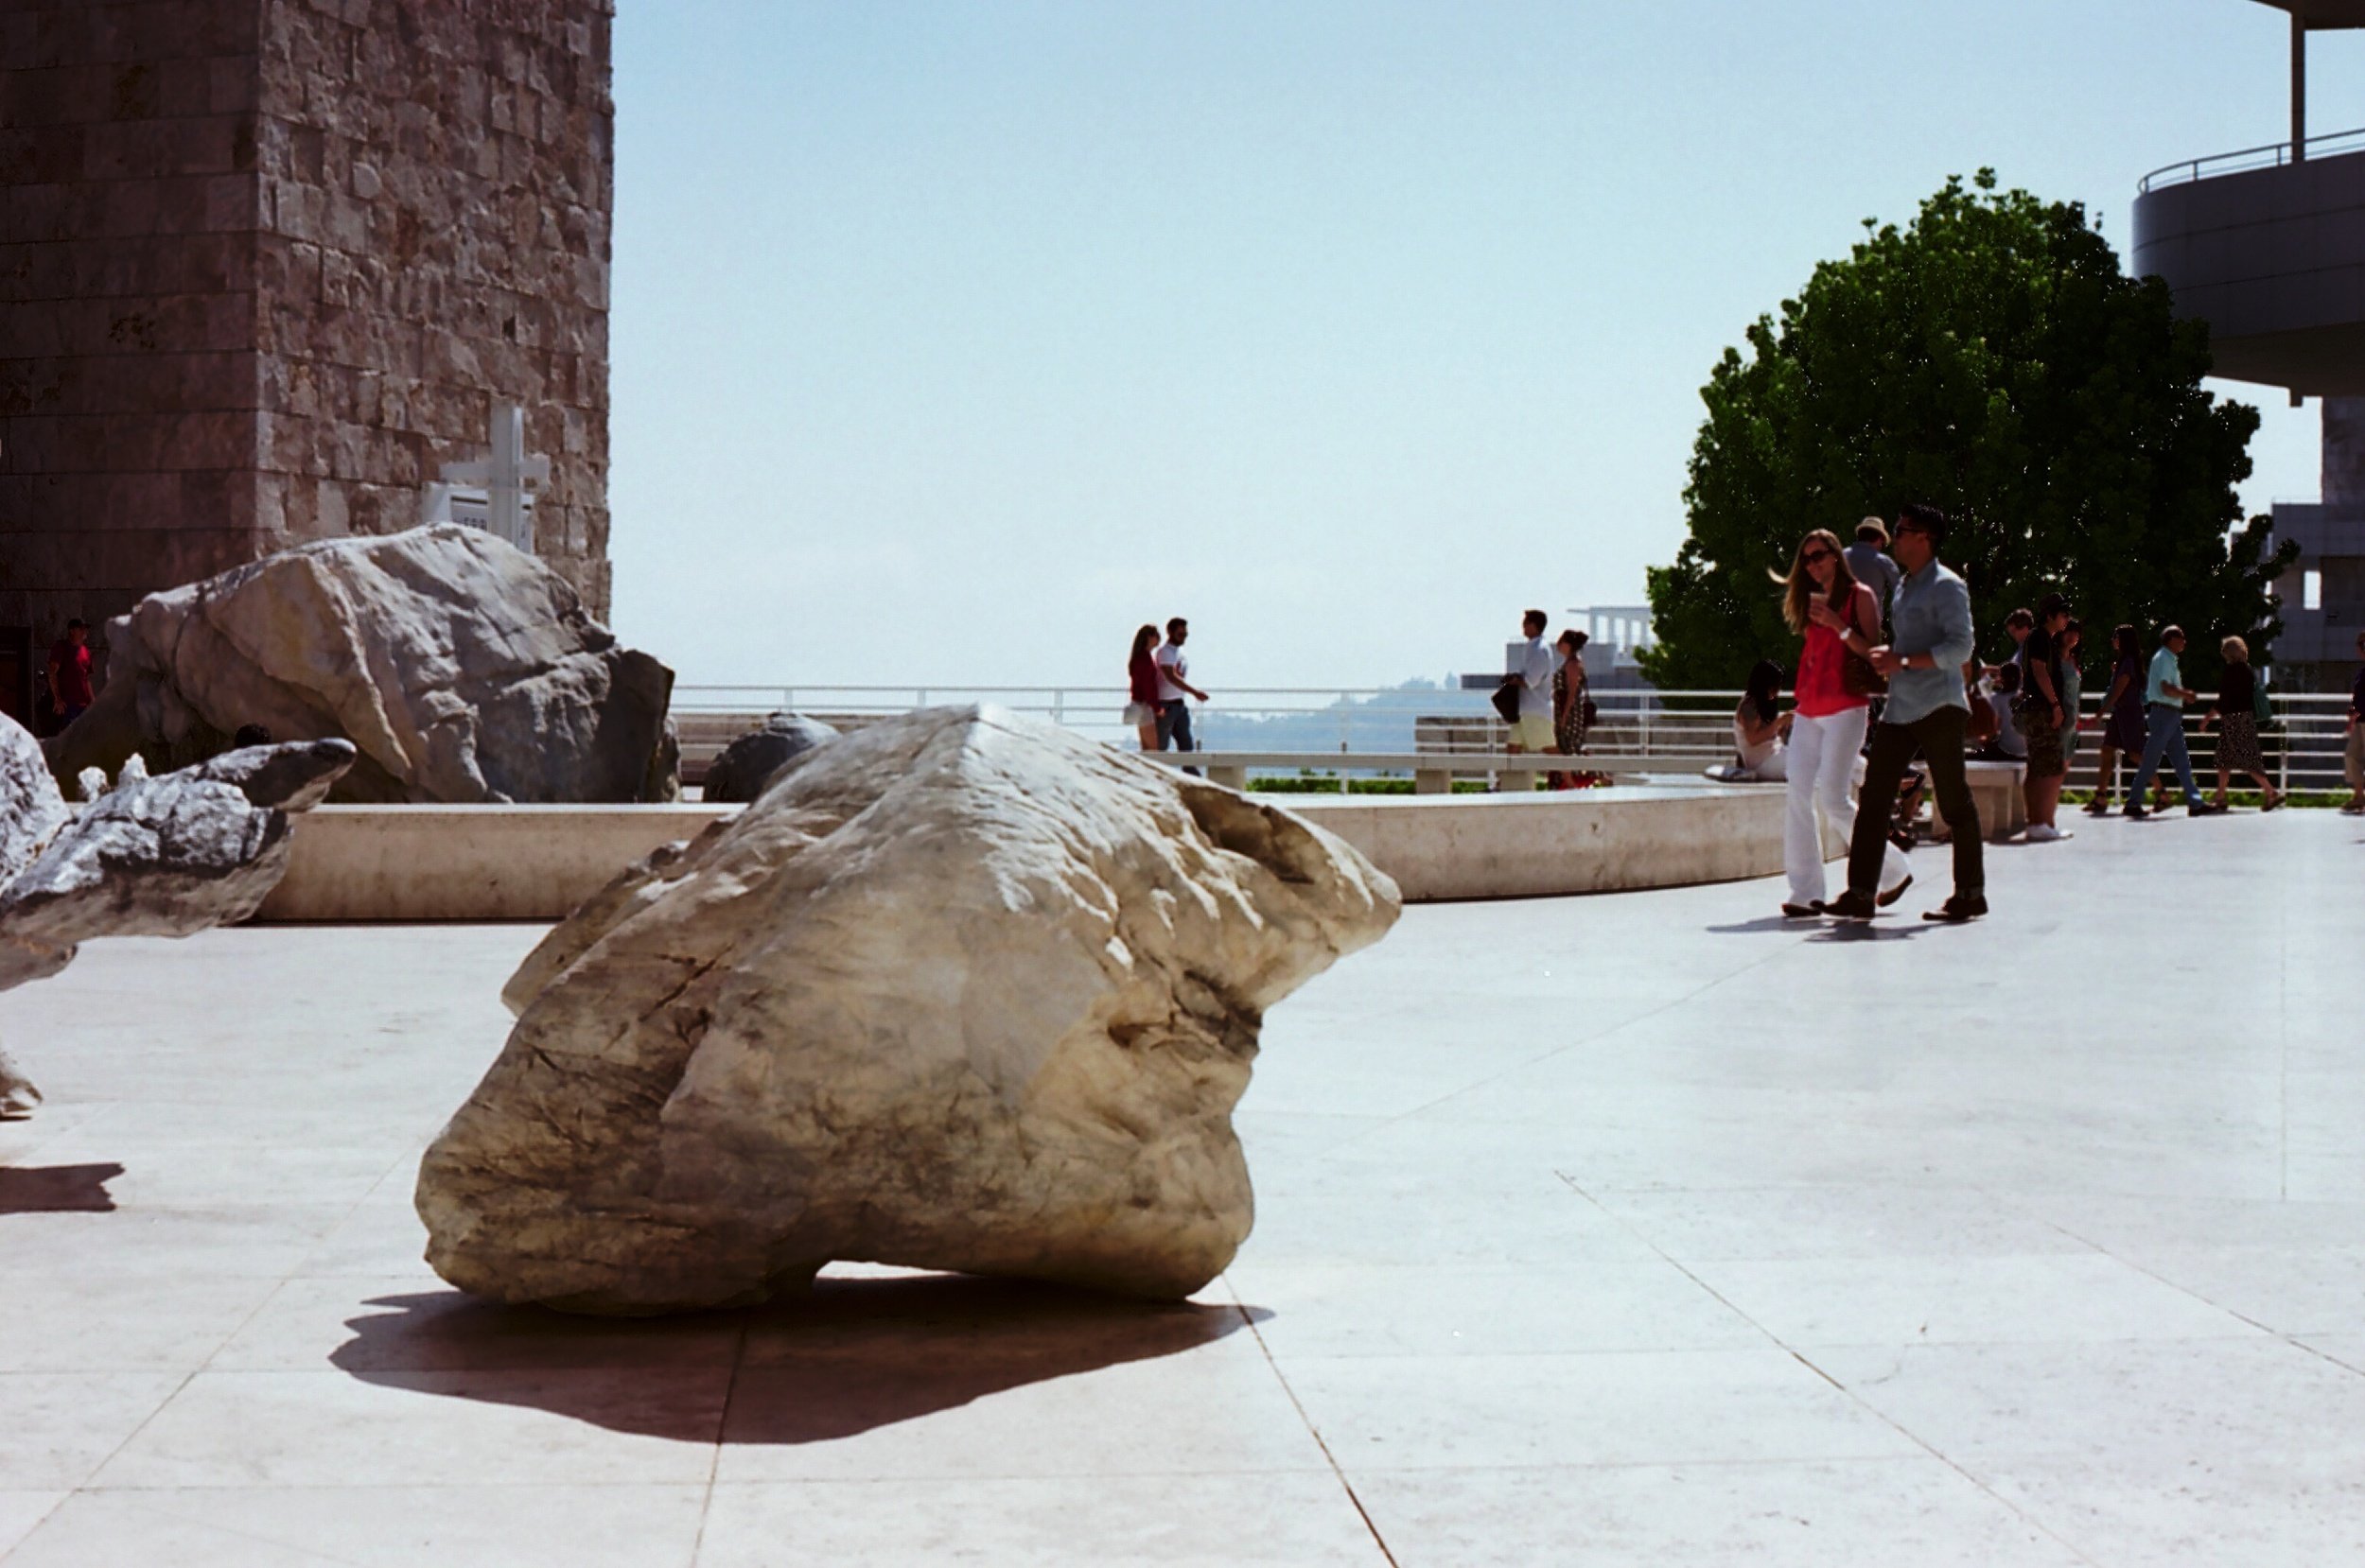 Ellingsen Photography The Getty Museum on Fujicolor Film